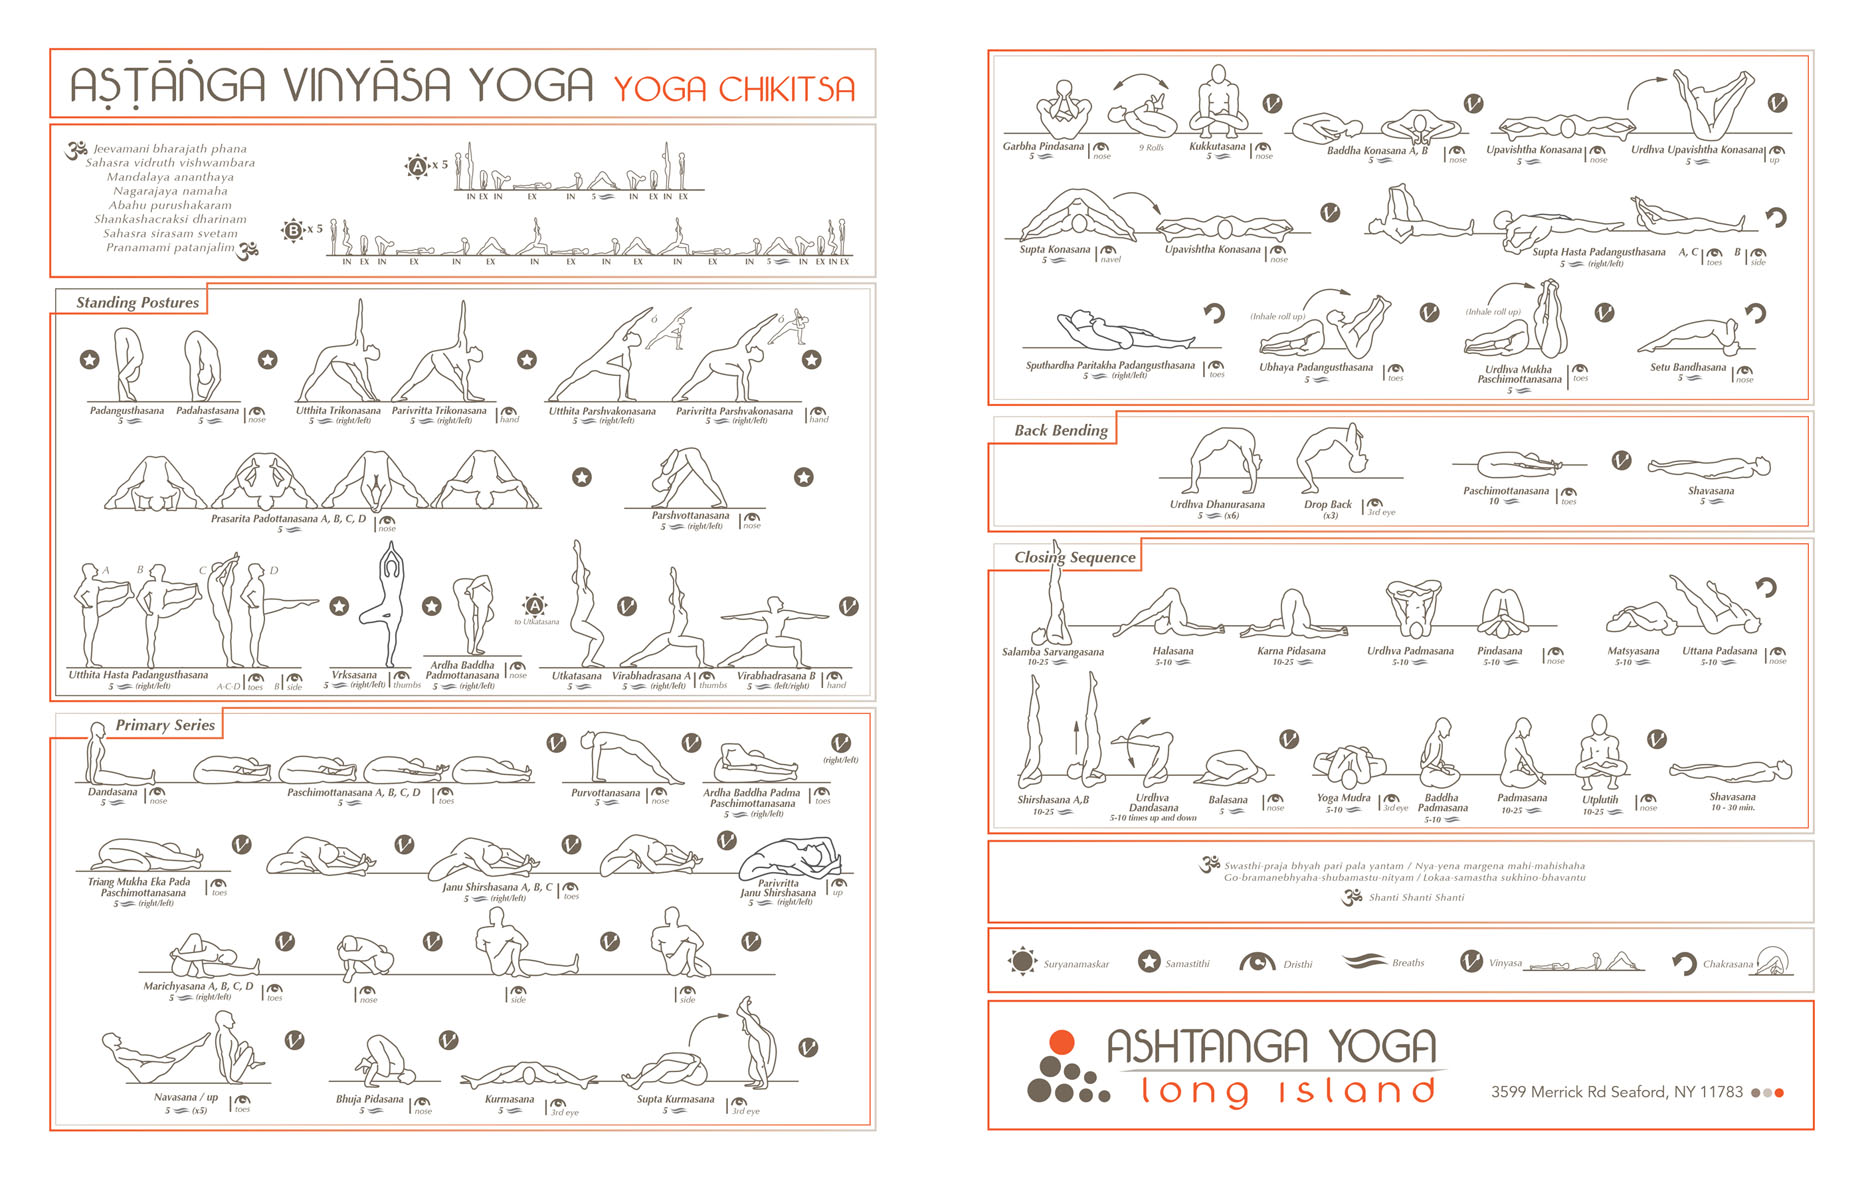 Primary Series of Ashtanga Vinyasa Yoga -Yoga Chikitsa